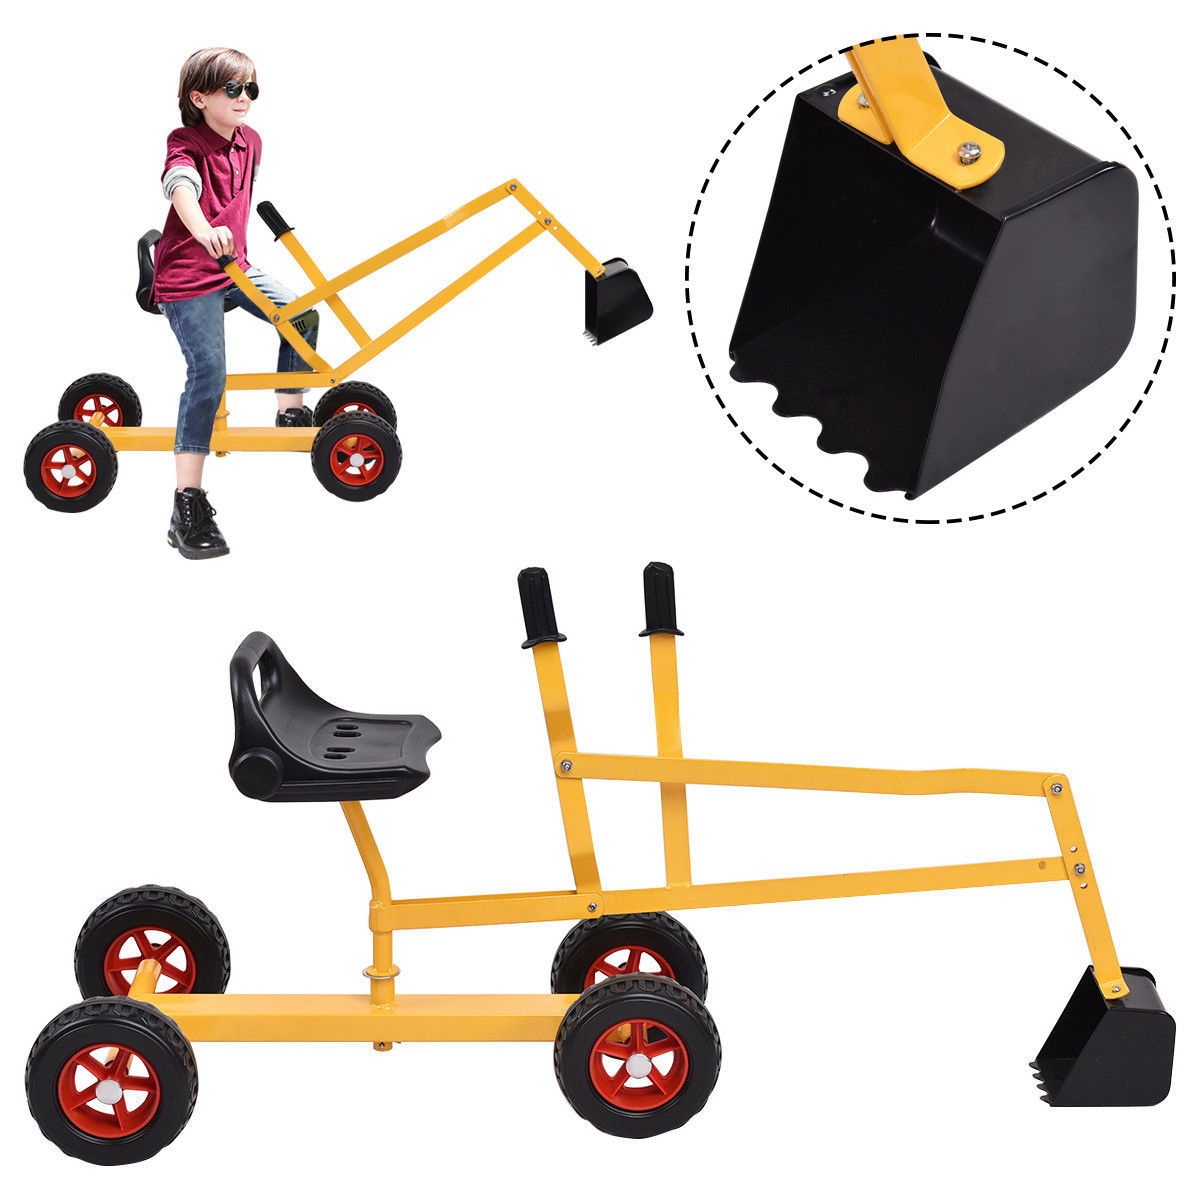 Gymax Heavy Duty Kid Ride-on Sand Digger Excavator Digging Scooper Toy 4-Wheel by Gymax